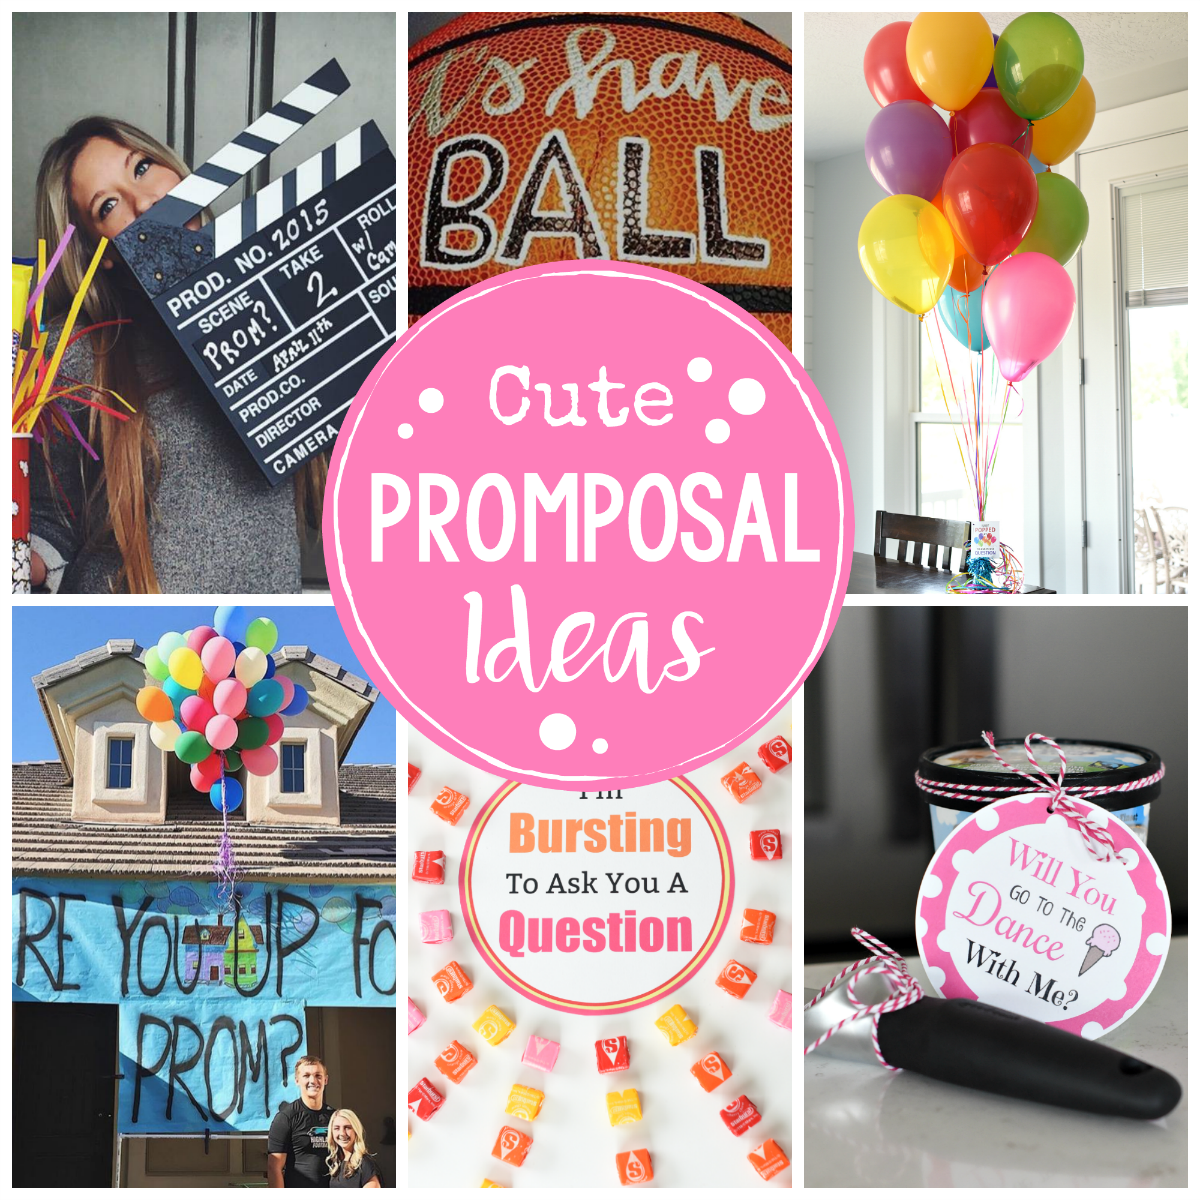 Cute Promposal Ideas-Fun Ways to Ask Someone to Homecoming or Prom